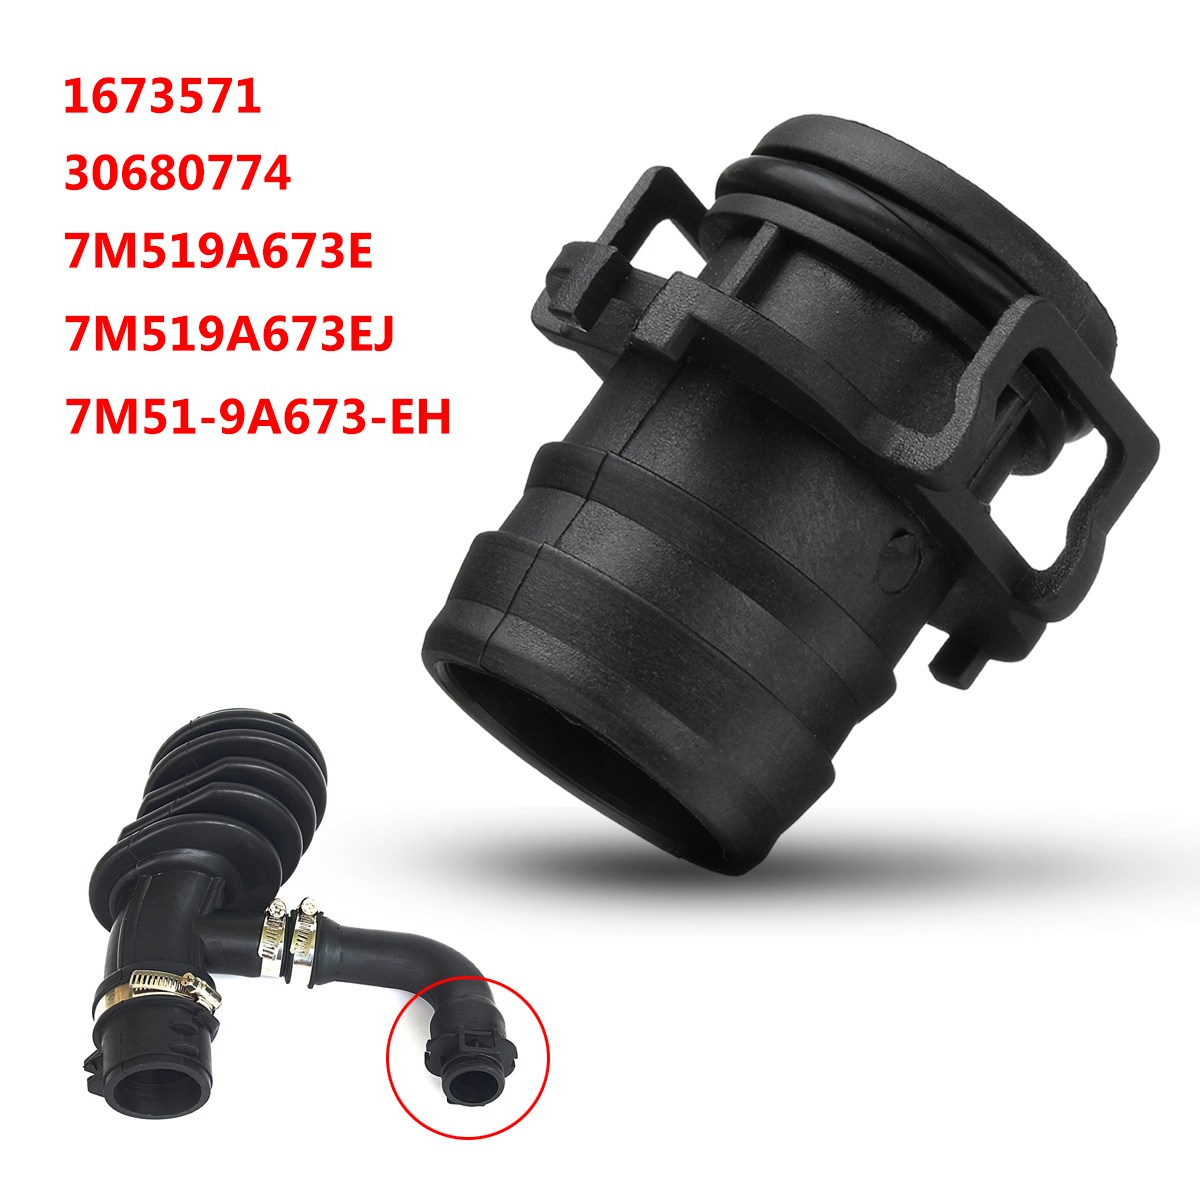 Car Air Filter Flow Intake Hose Pipe Clip 1673571 7M519A673EJ 7M51-9A673-EH 7M519A673E For Ford /Focus /C-Max 2003-2007